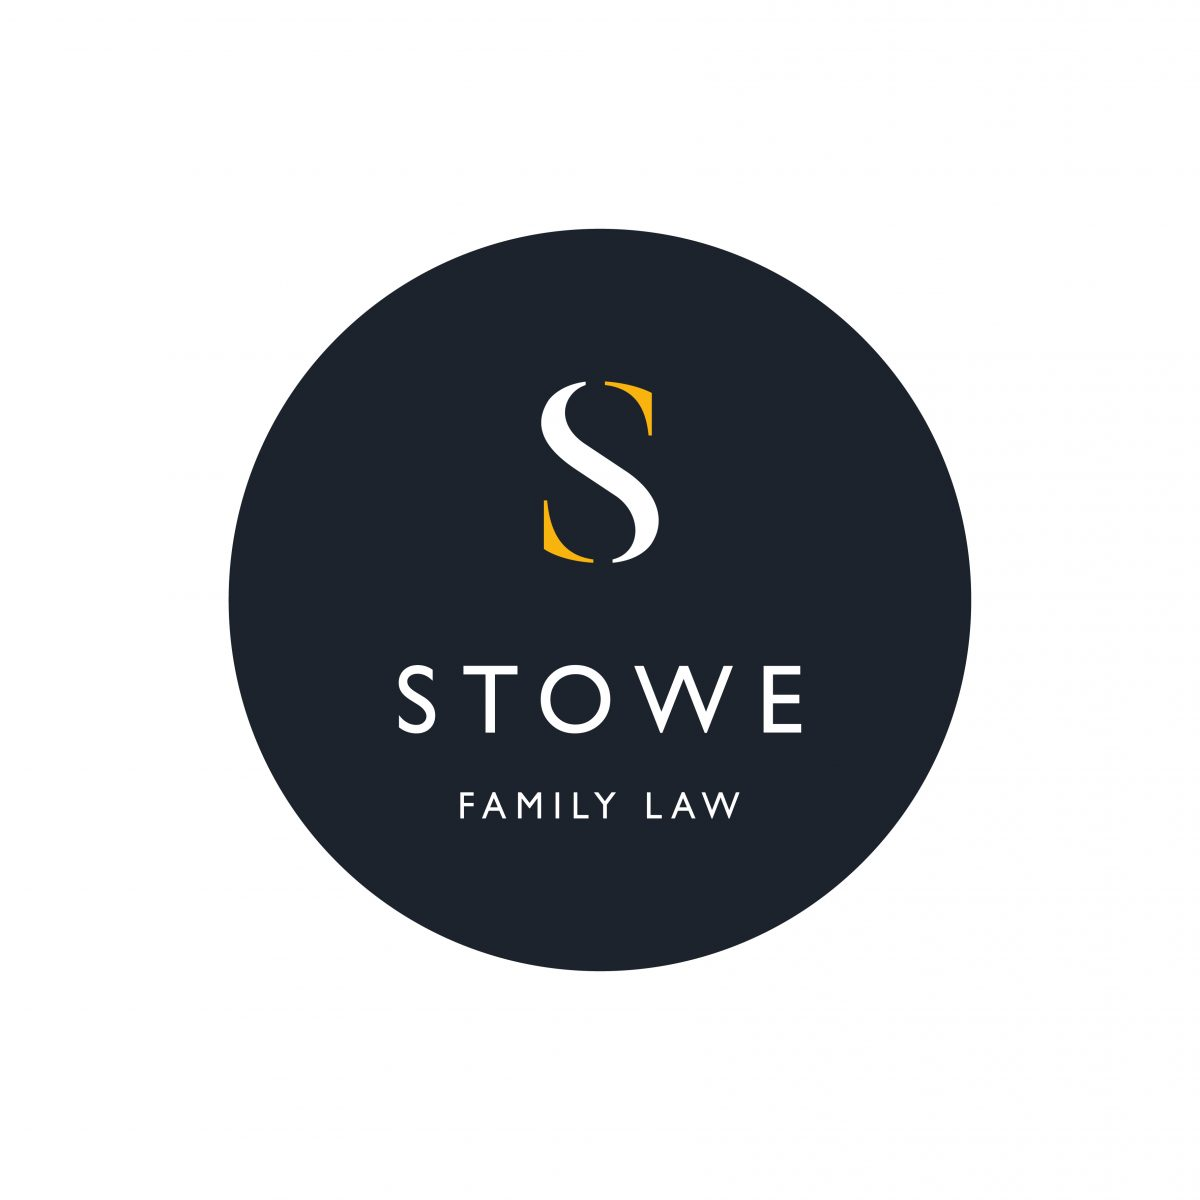 Bristol Law School and Stowe Family Law enter into collaborative relationship